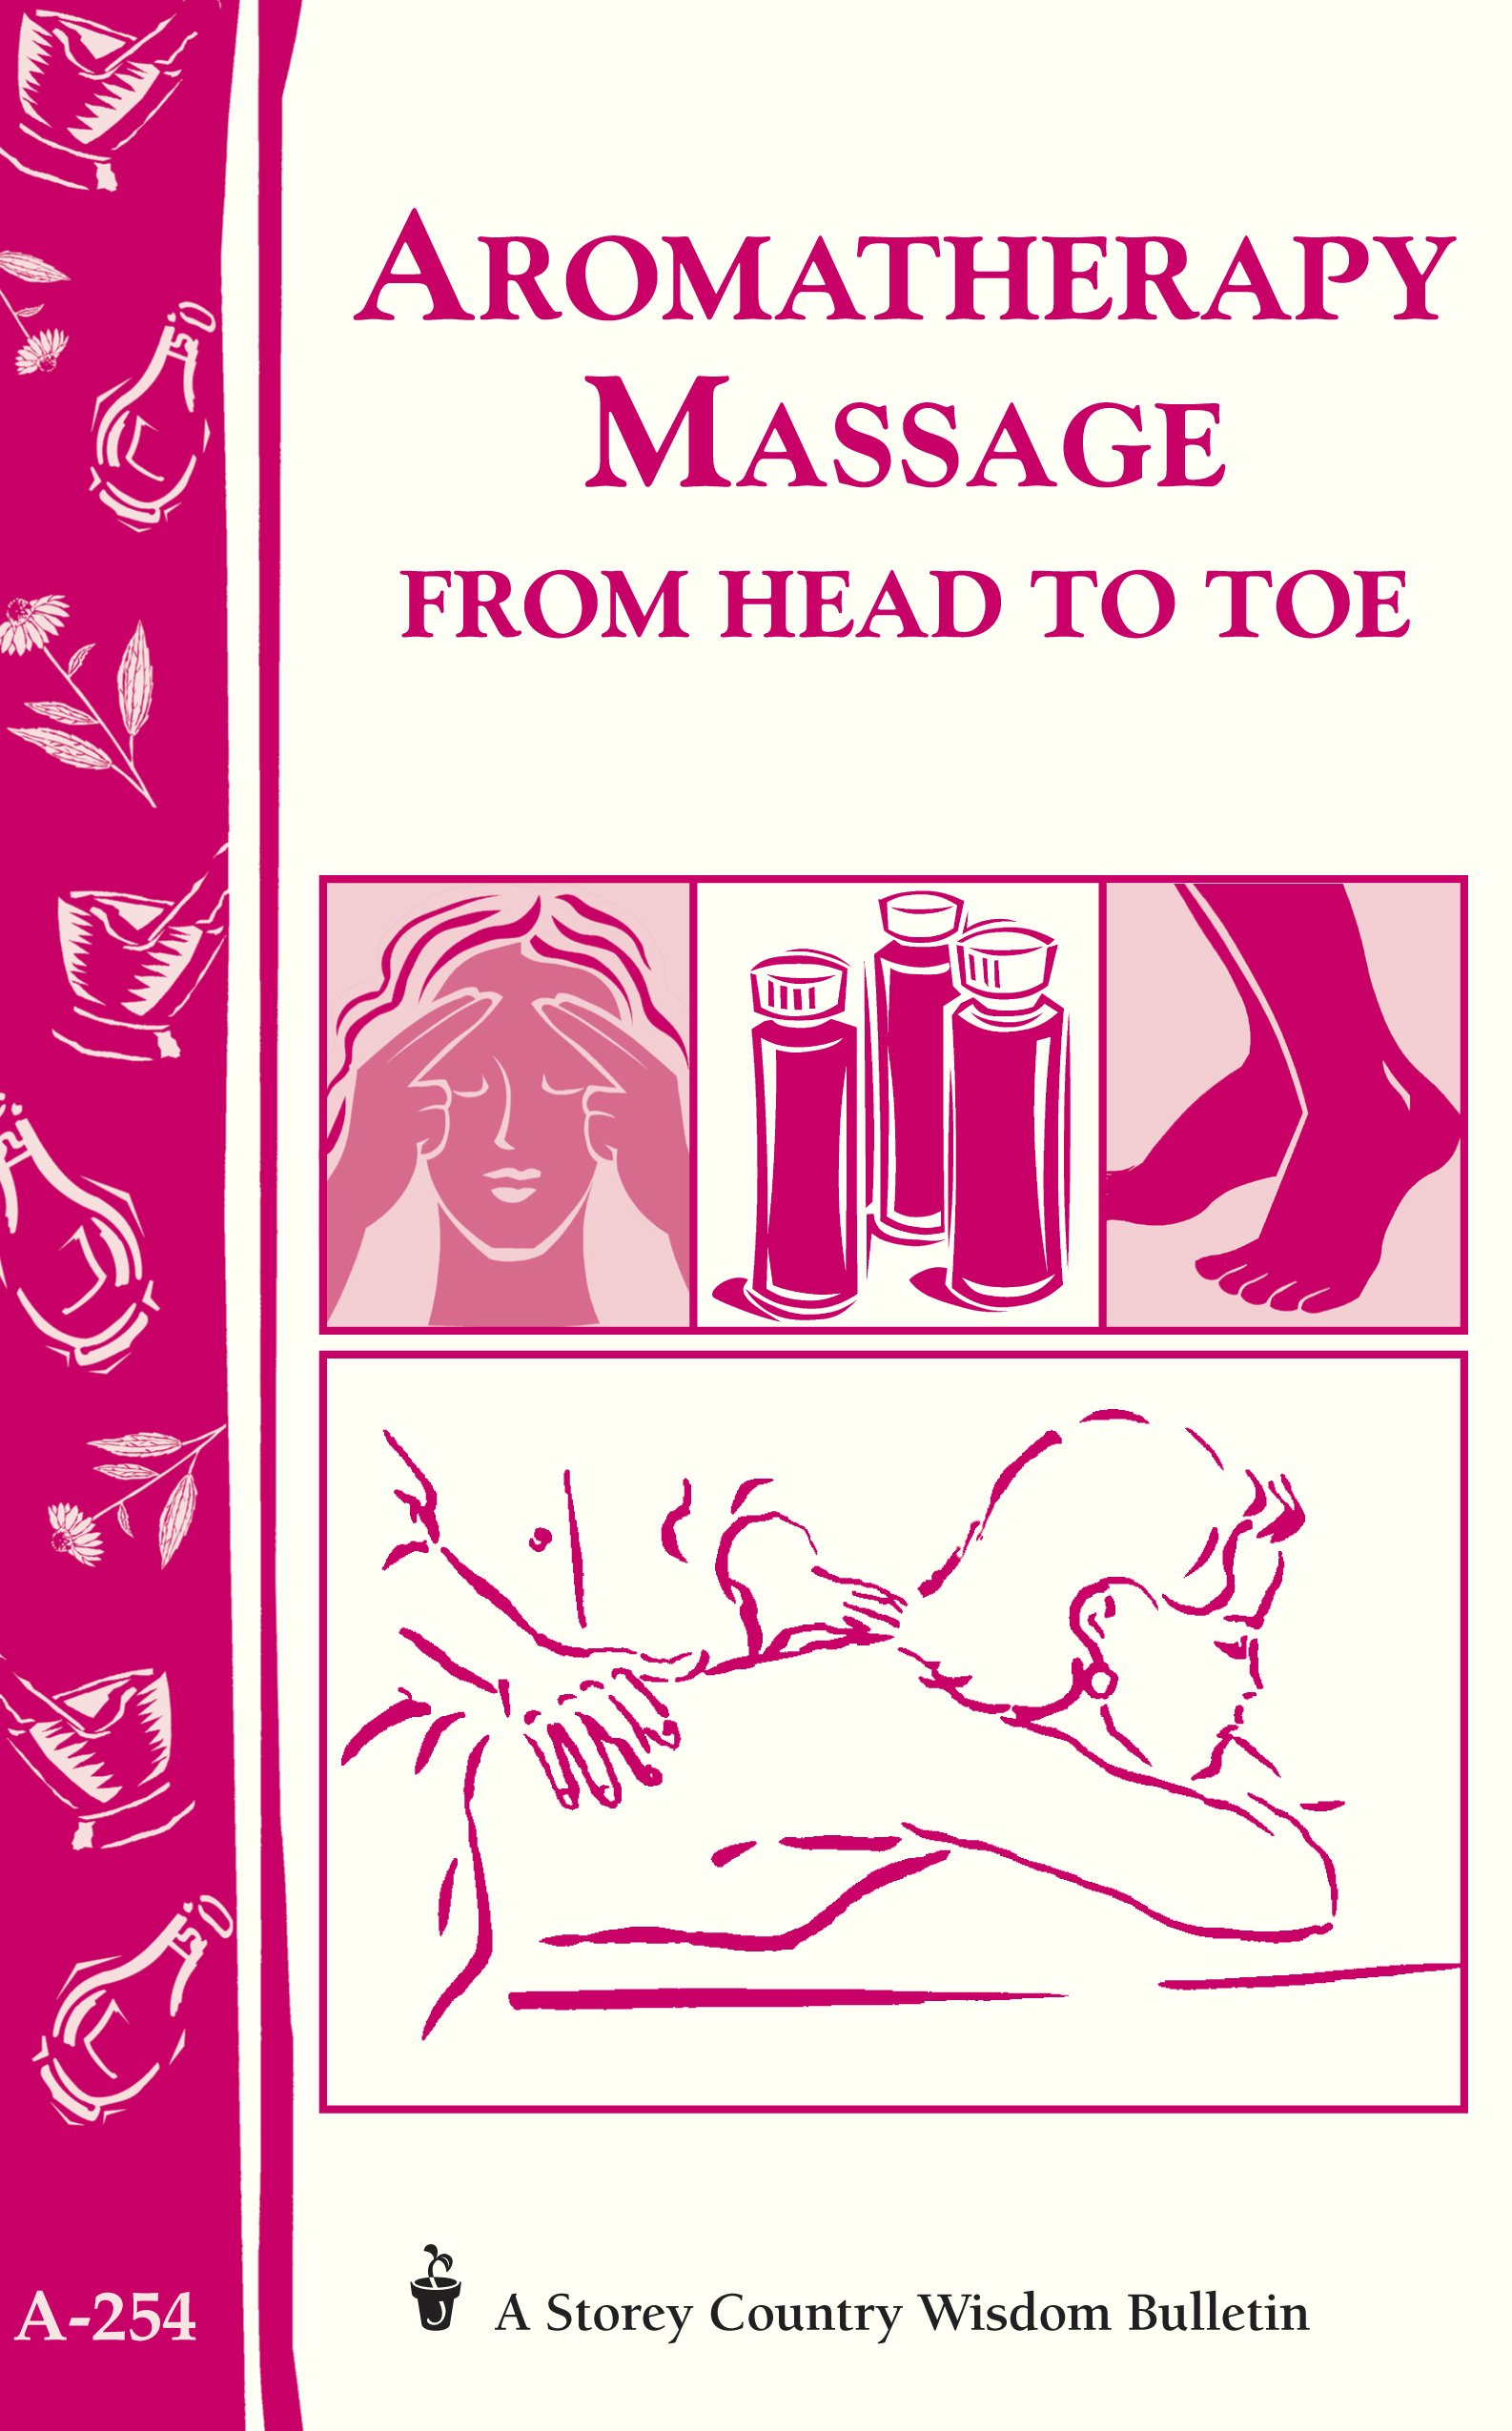 Download Aromatherapy Massage from Head to Toe: Storey's Country Wisdom Bulletin A-254 (Storey Country Wisdom Bulletin, A-254) PDF